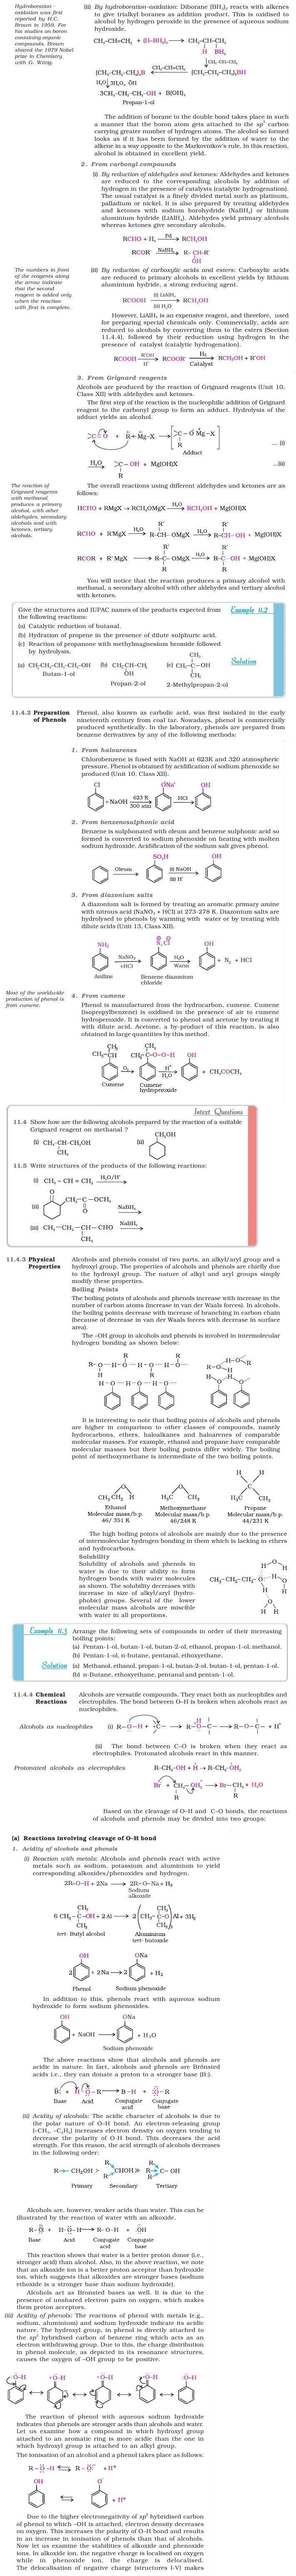 NCERT Class XII Chemistry Chapter 11 - Alcohols, Phenols and Ethers